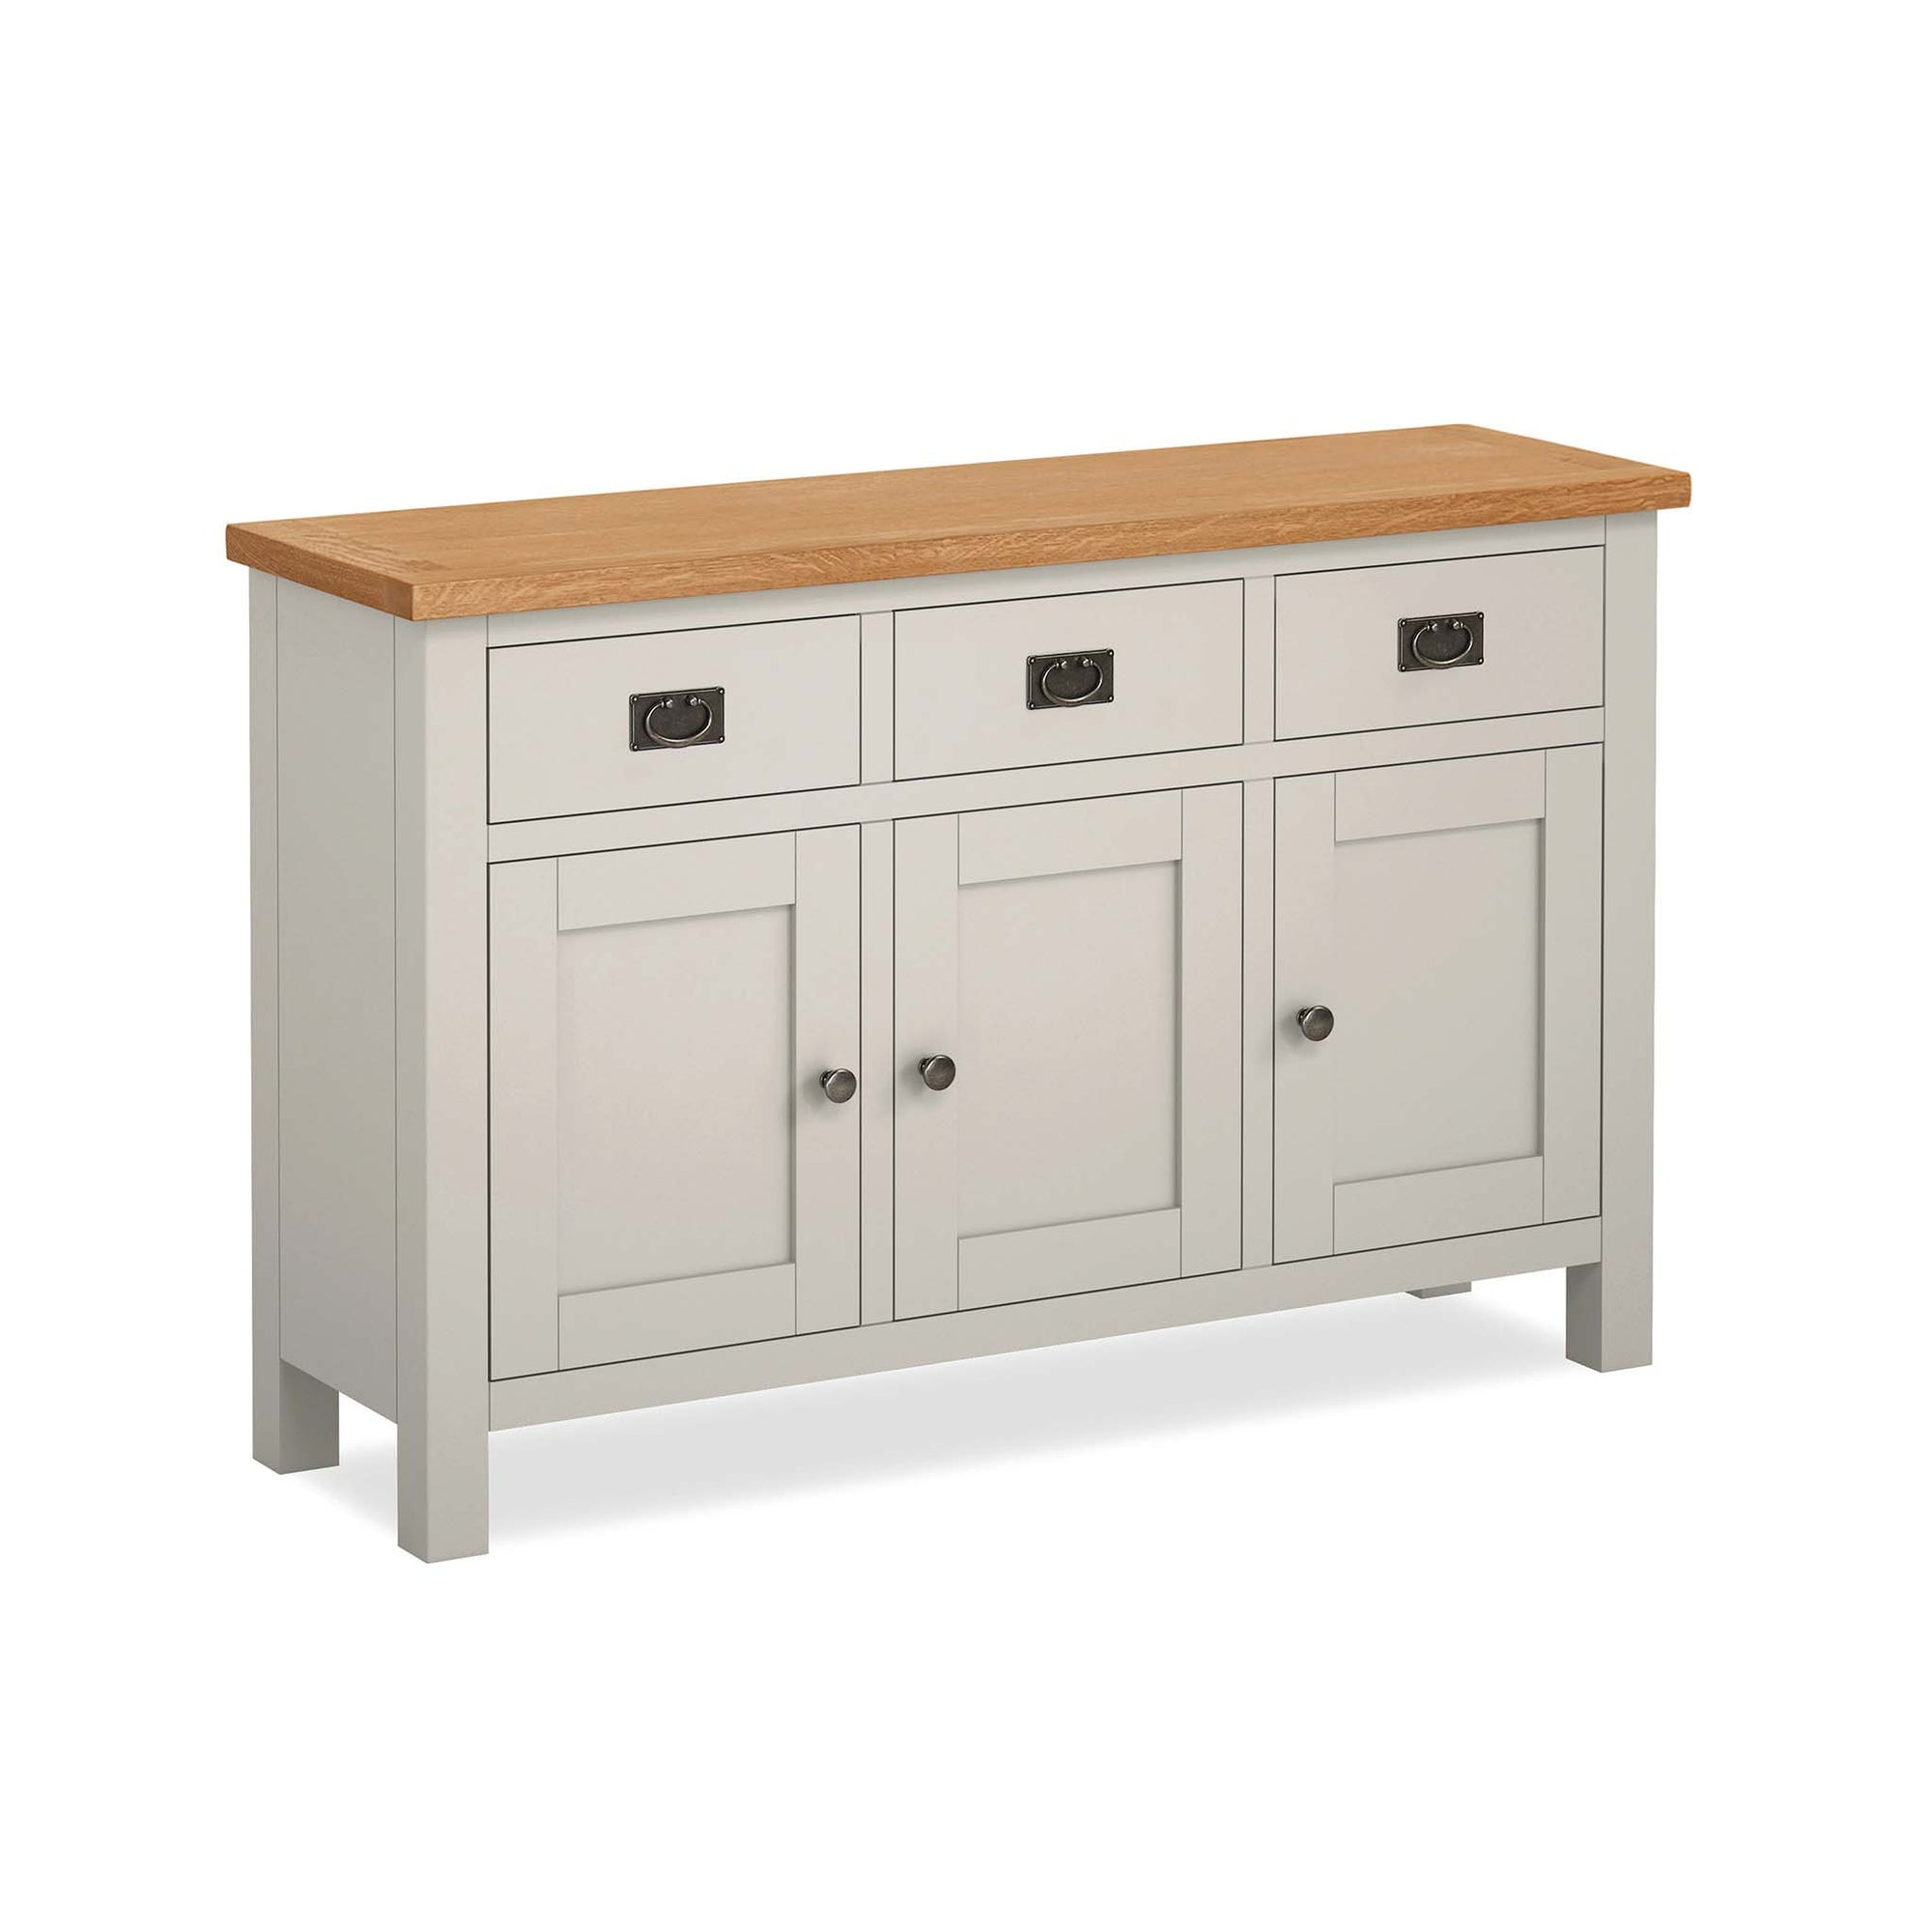 Dorset Stone Grey Large Sideboard Cabinet by Roseland Furniture